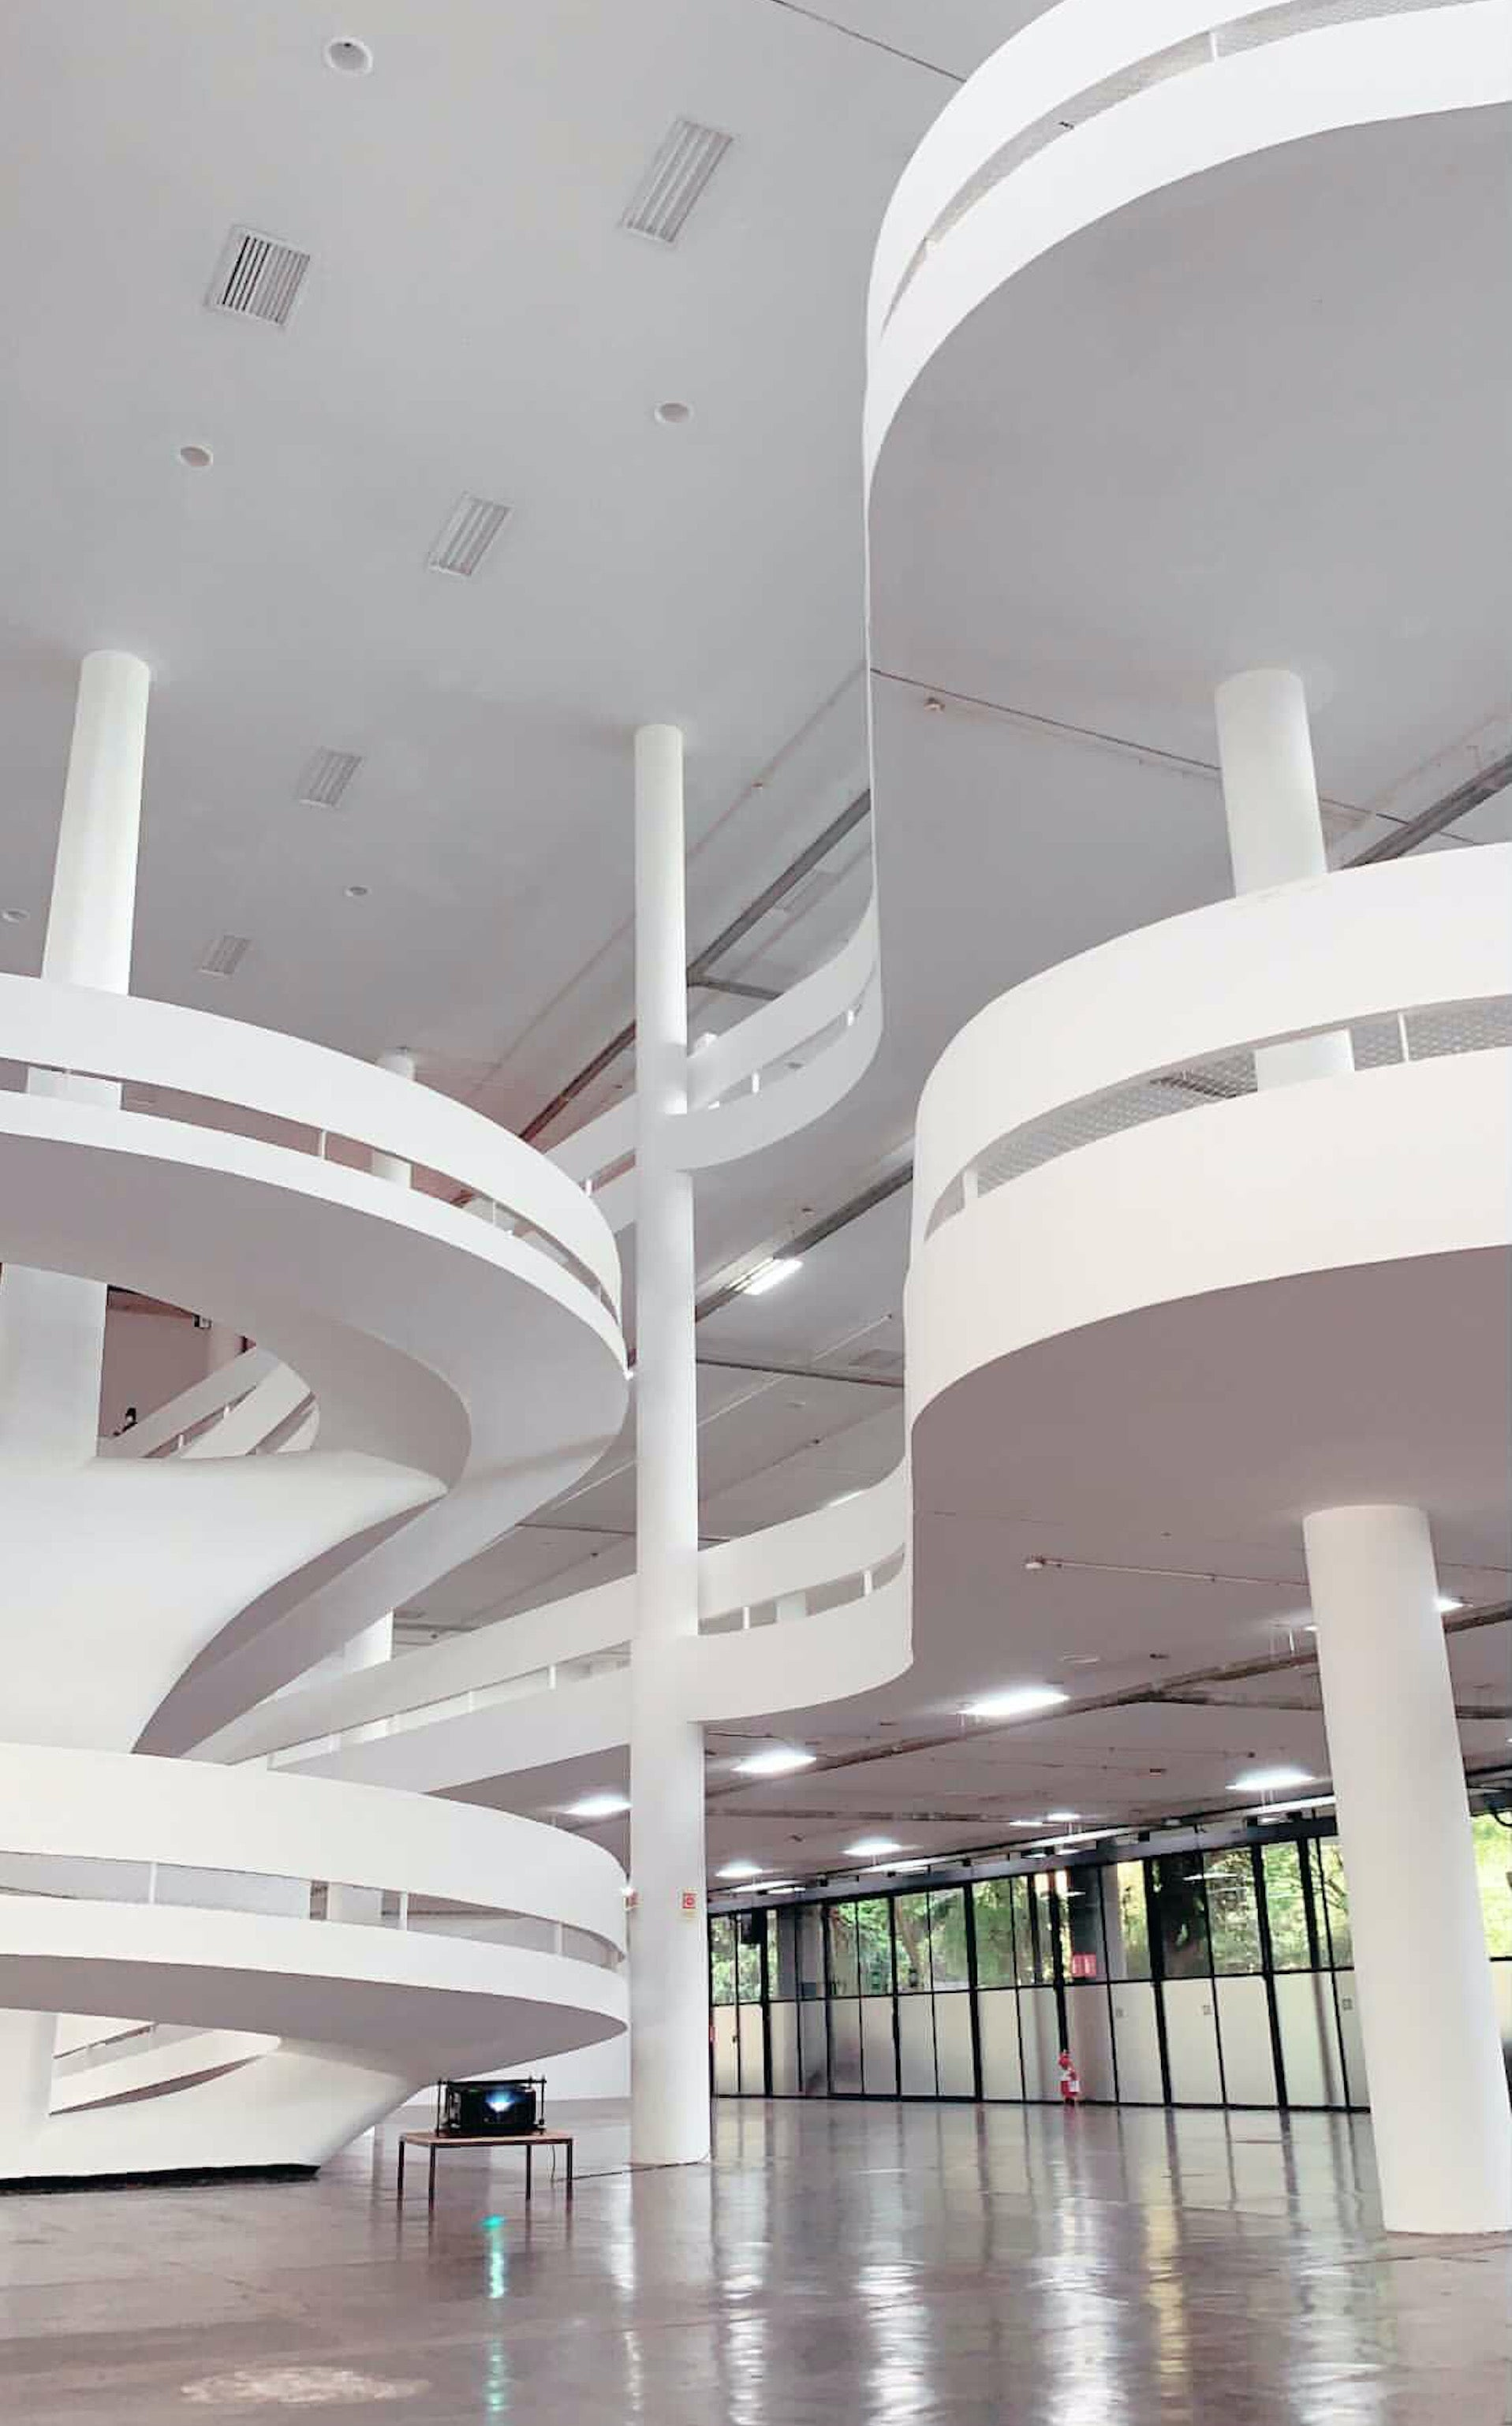 """Inside the Ibirapuera Biennial Building in São Paulo. """"An icon of architecture and design, Oscar Niemeyer was the master of curves,"""" Schertel says. """"This image shows the interior of a building that beautifully represents our design heritage."""" Photo © Ricardo Gaioso"""